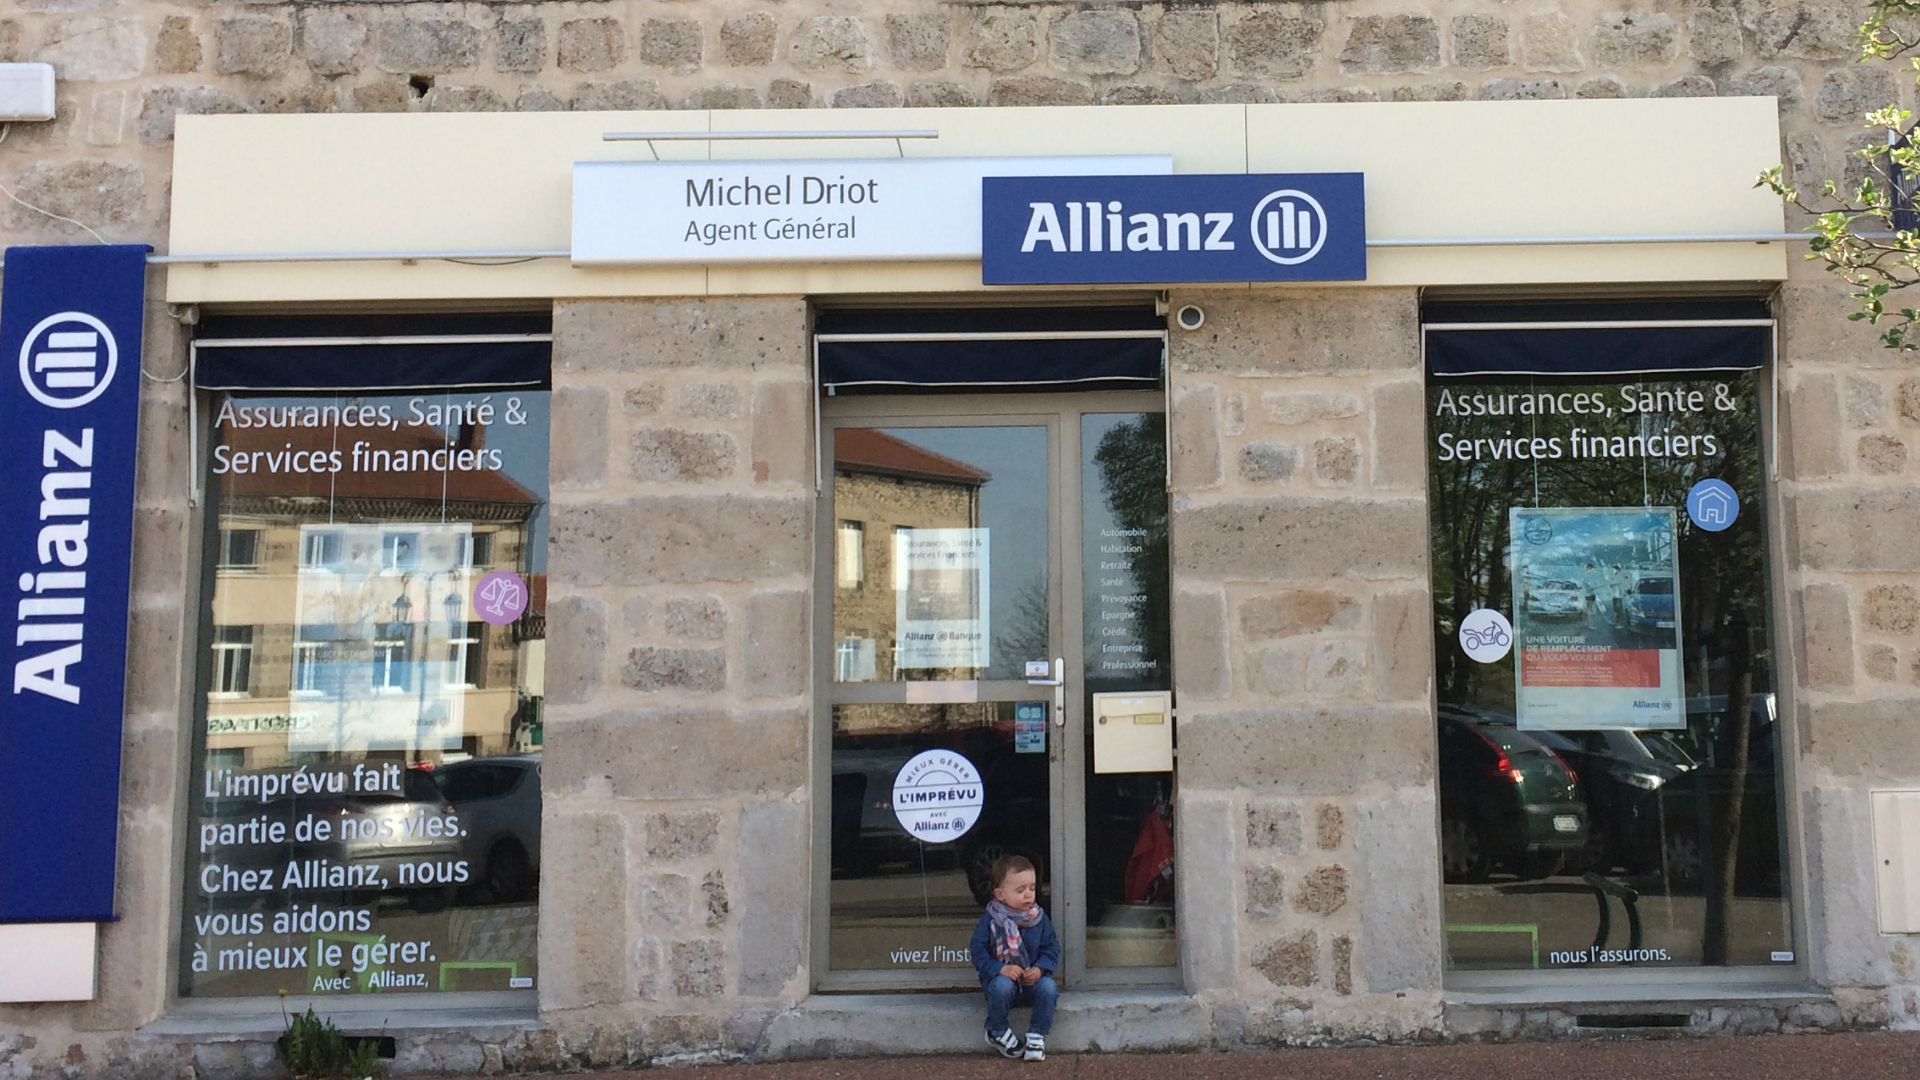 Allianz St didier en velay - Michel DRIOT